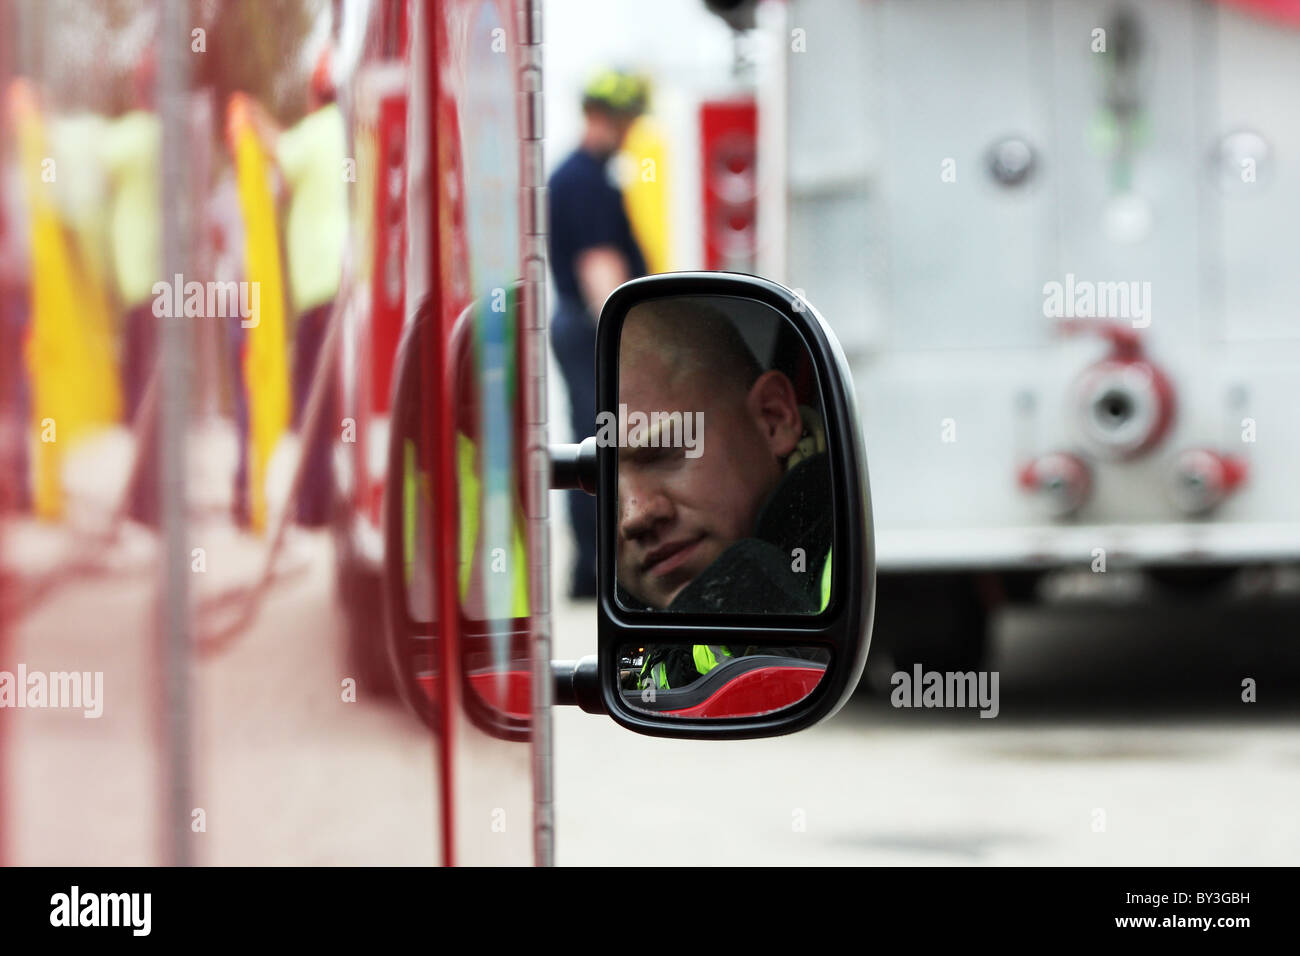 A firefighter reflection in the fire truck vehicle rear view side mirror and a firefighter in the background Stock Photo